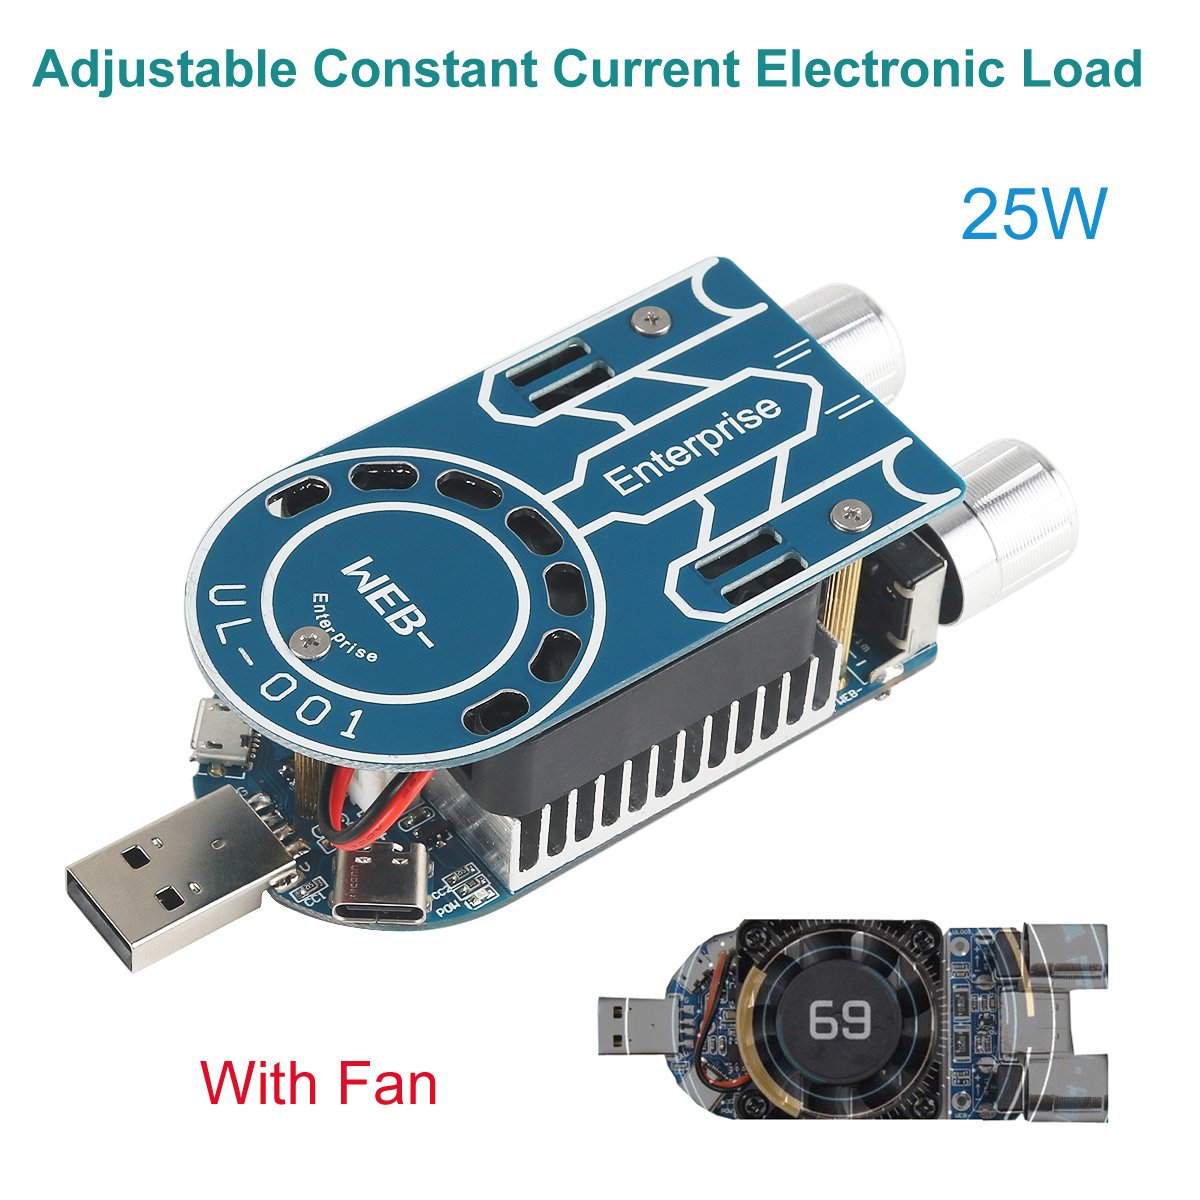 Usb Load Tester Electronic 25w Dc5 24v 02 35a For More Detail Circuit Provides Constantcurrent Testing Resistor Adjustable Constant Current Resistance Battery Discharge Aging